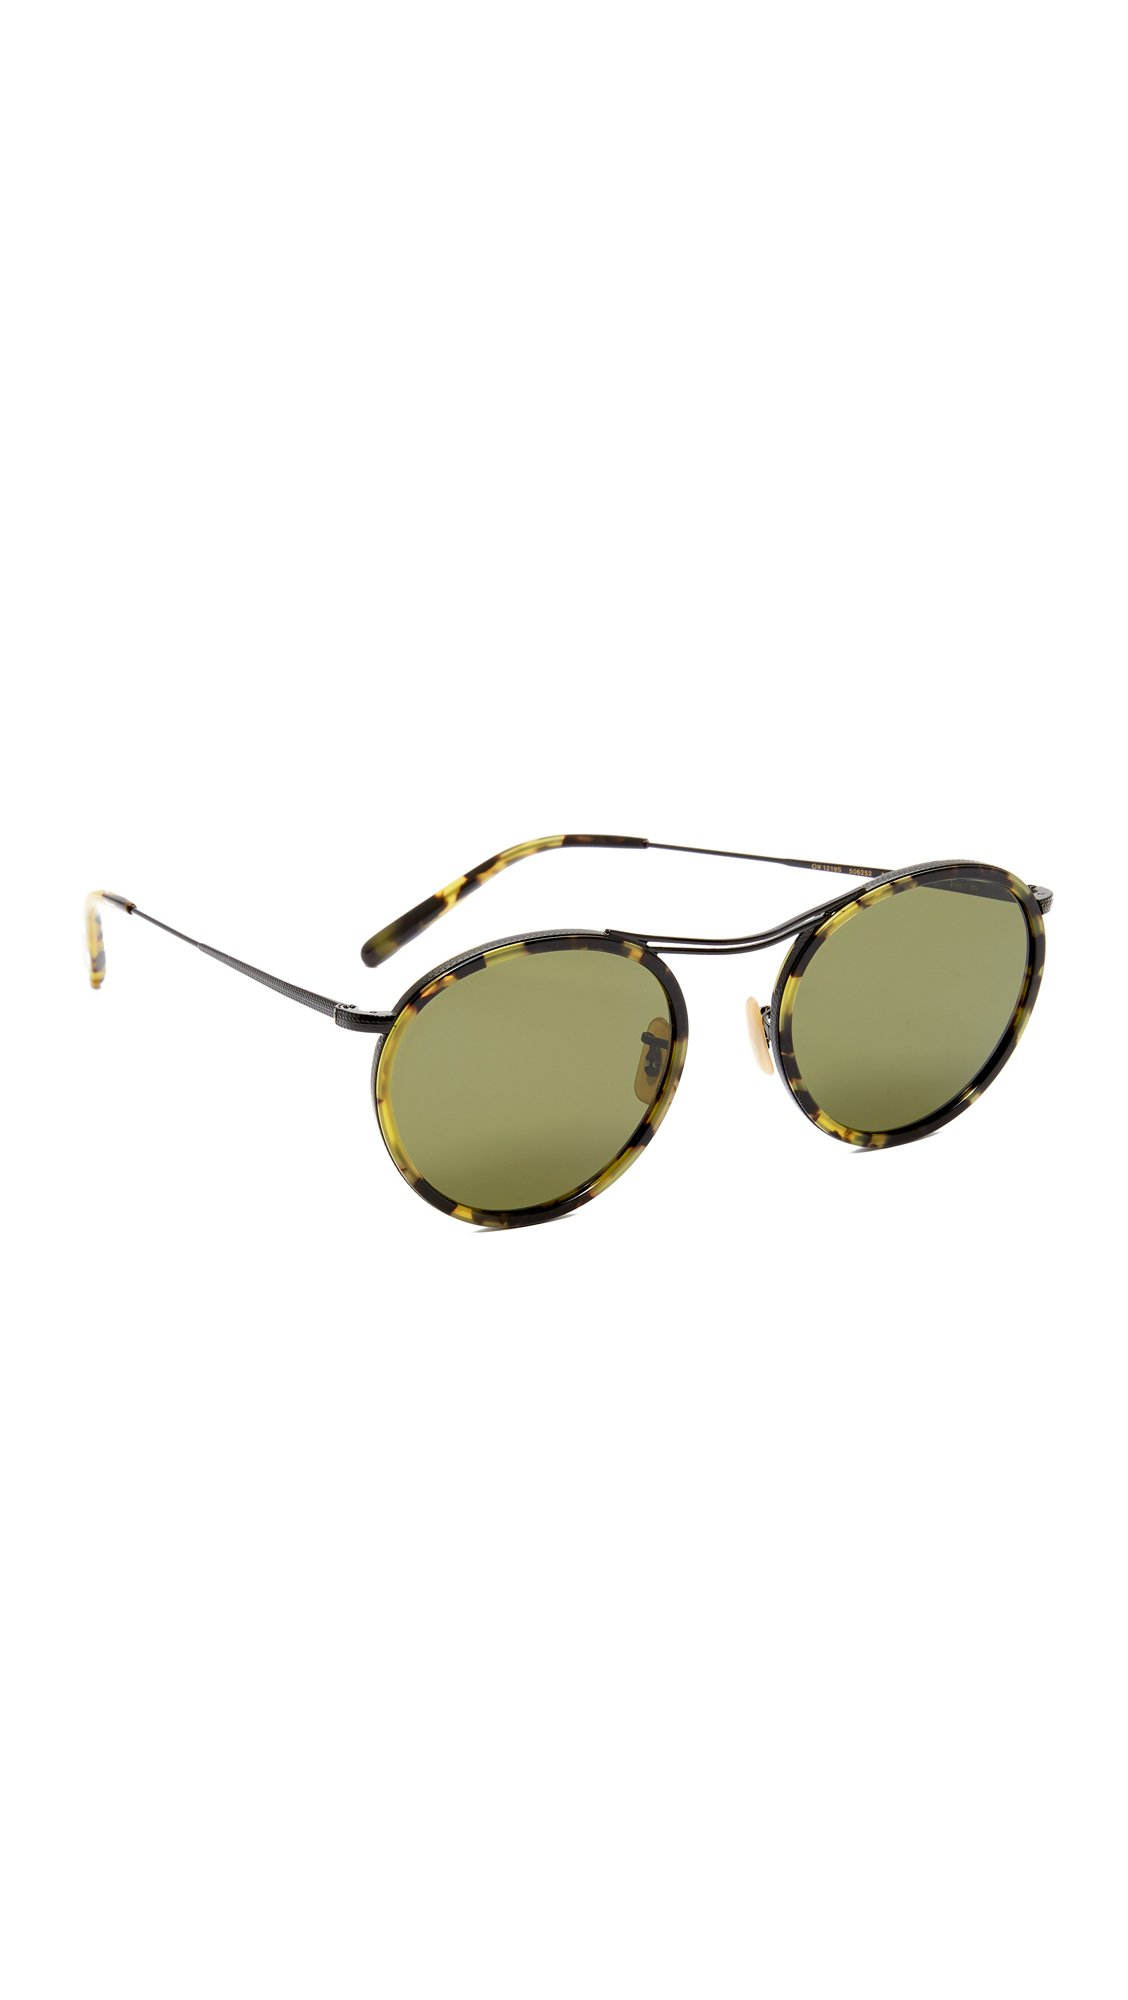 Oliver Peoples Eyewear Women's 30th Anniversary MP-3 Sunglasses, VDTB Black/G15, One Size by Oliver Peoples